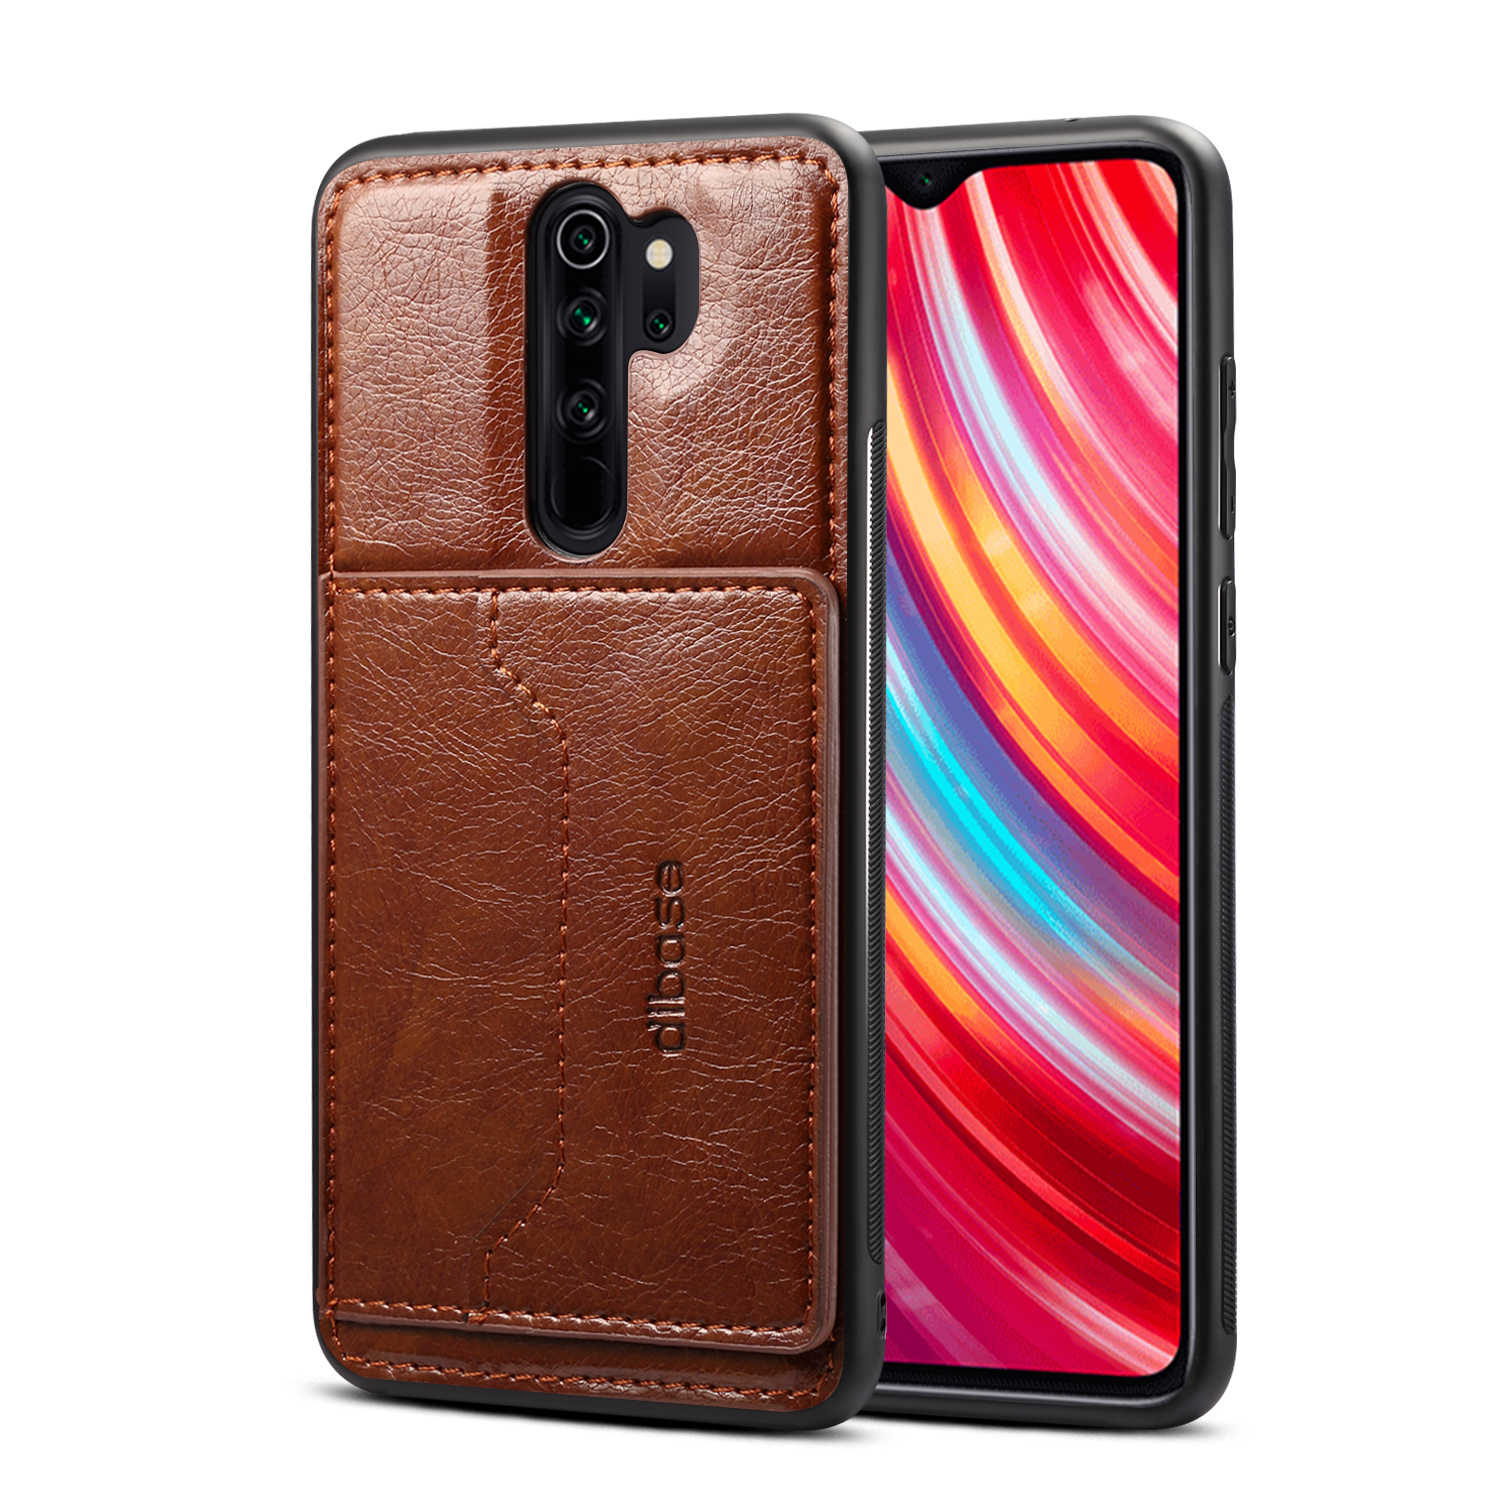 For Red Mi NOTE 8/8 Pro Cellphone Smart Shell 2-in-1 Textured PU Leather Card Holder Stand-viewing Overall Protection Case coffee